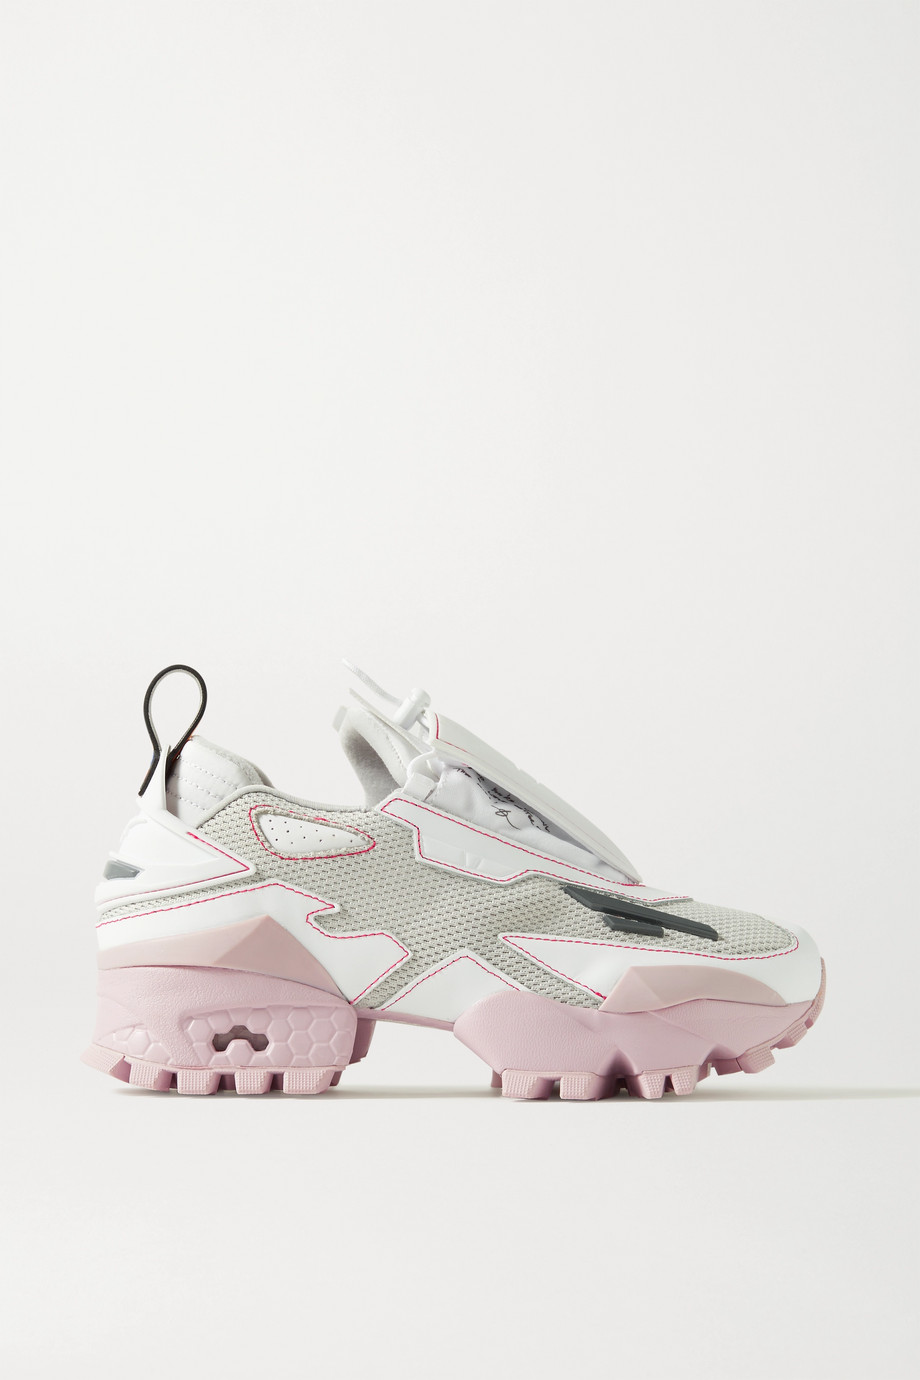 Reebok + Pyer Moss Trail Fury mesh and faux leather sneakers